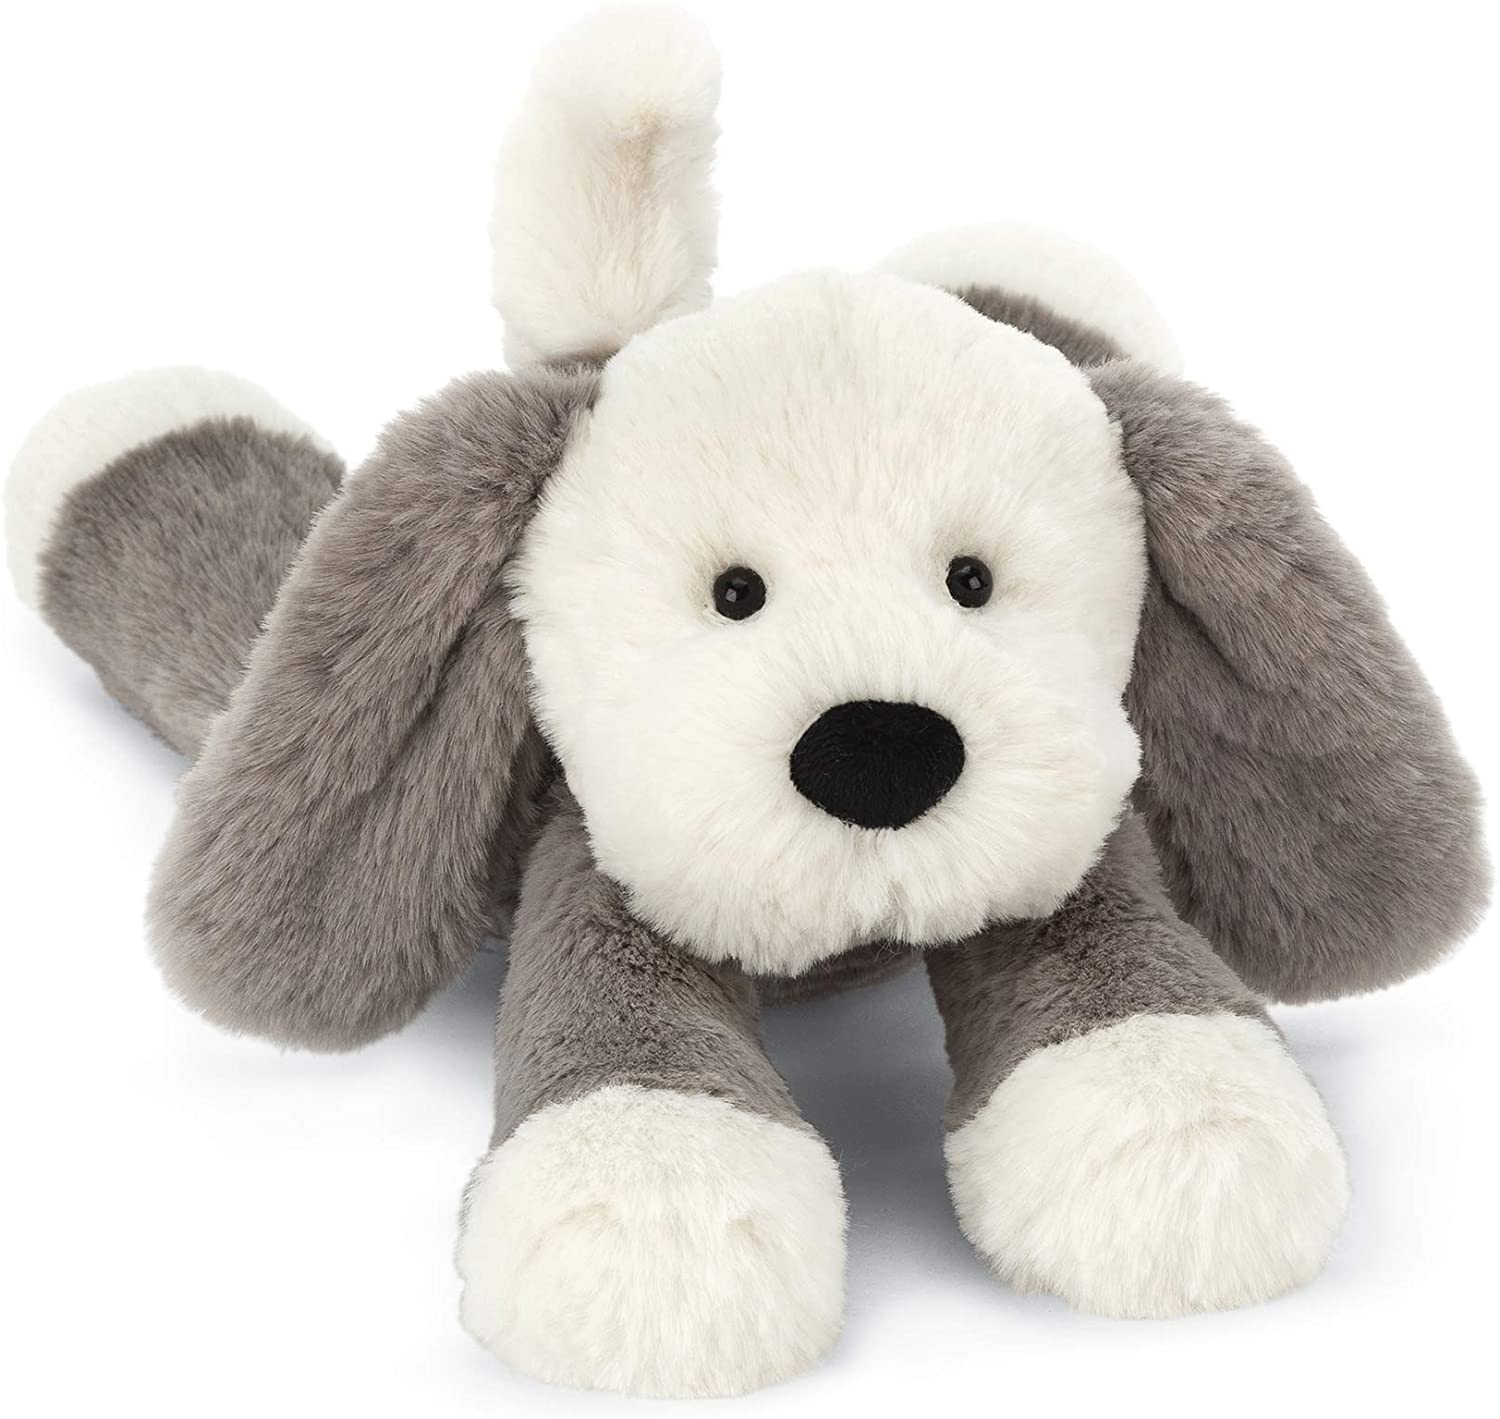 Jellycat Smudge Puppy Stuffed Animal, 14 inches - WishBasket